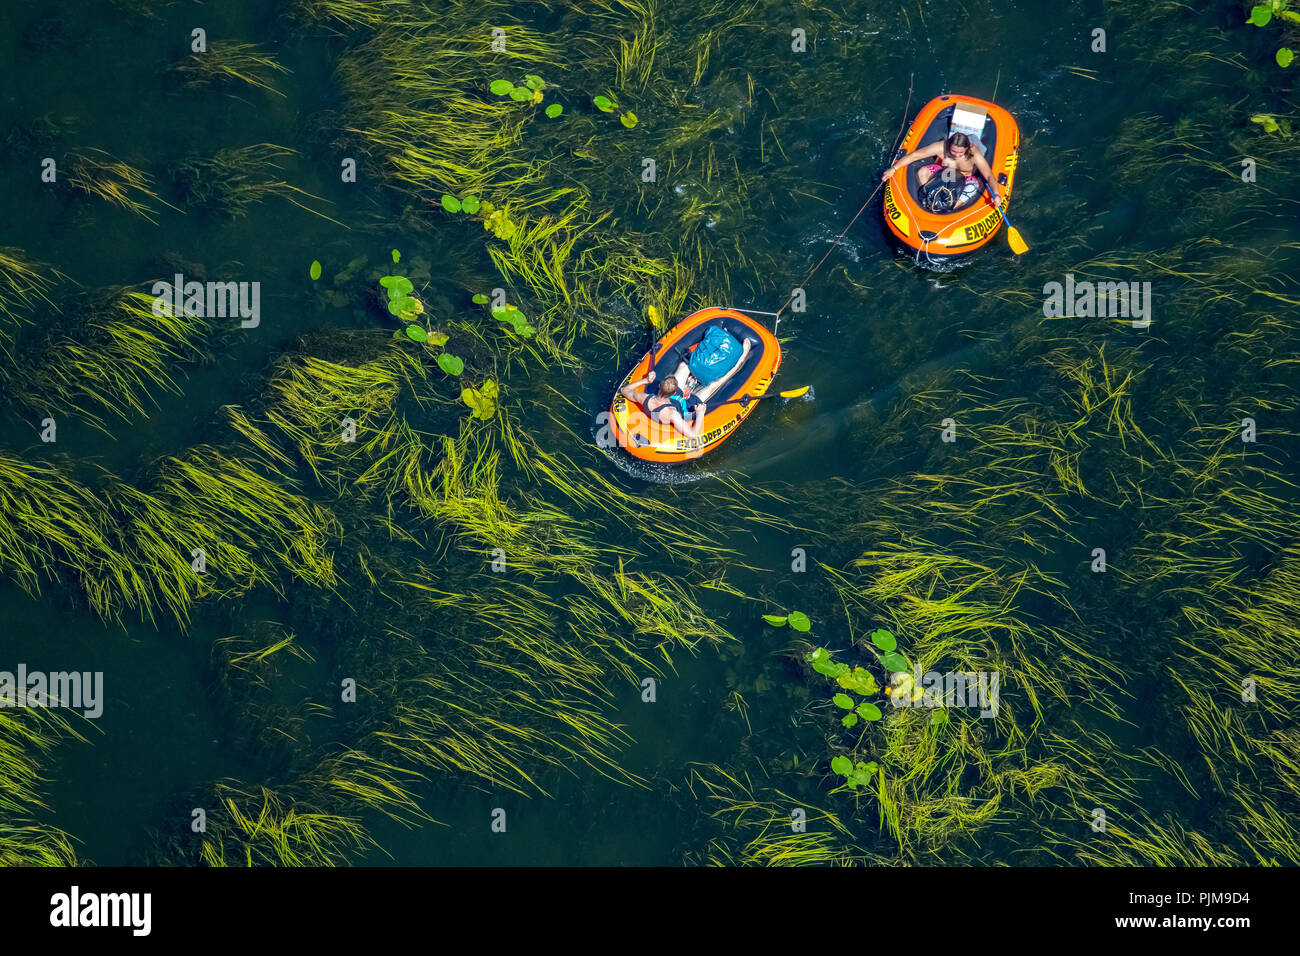 Bochum, rubber boats and air mattresses on the Ruhr at Kemnade reservoir, Witten, Ruhr area, North Rhine-Westphalia, Germany - Stock Image